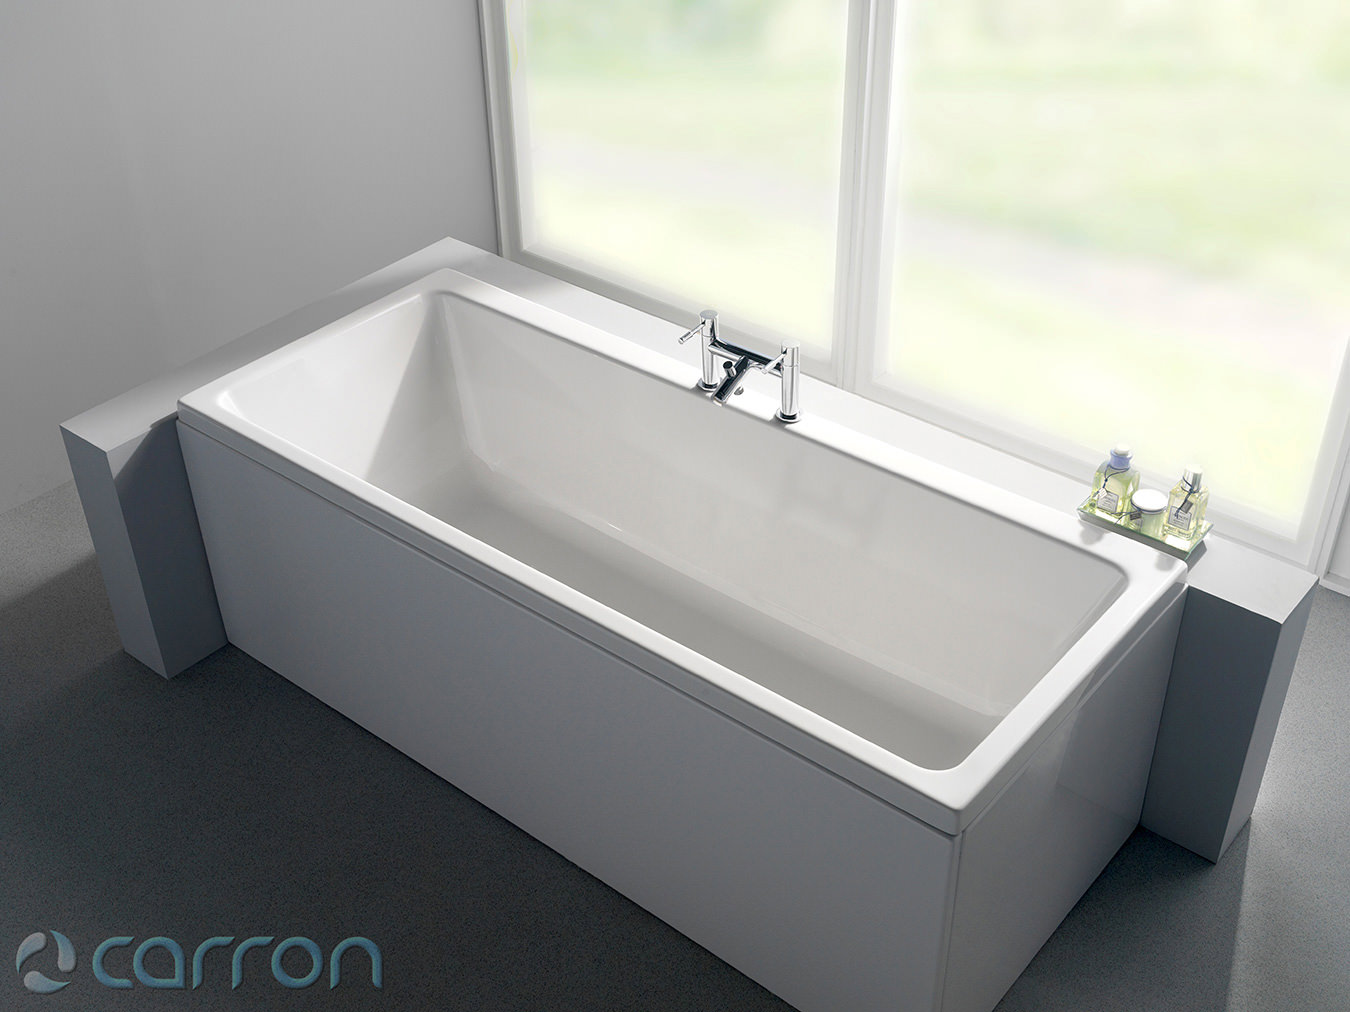 Carron quantum double ended acrylic bath 1800 x 800mm q4 for Bath 1800